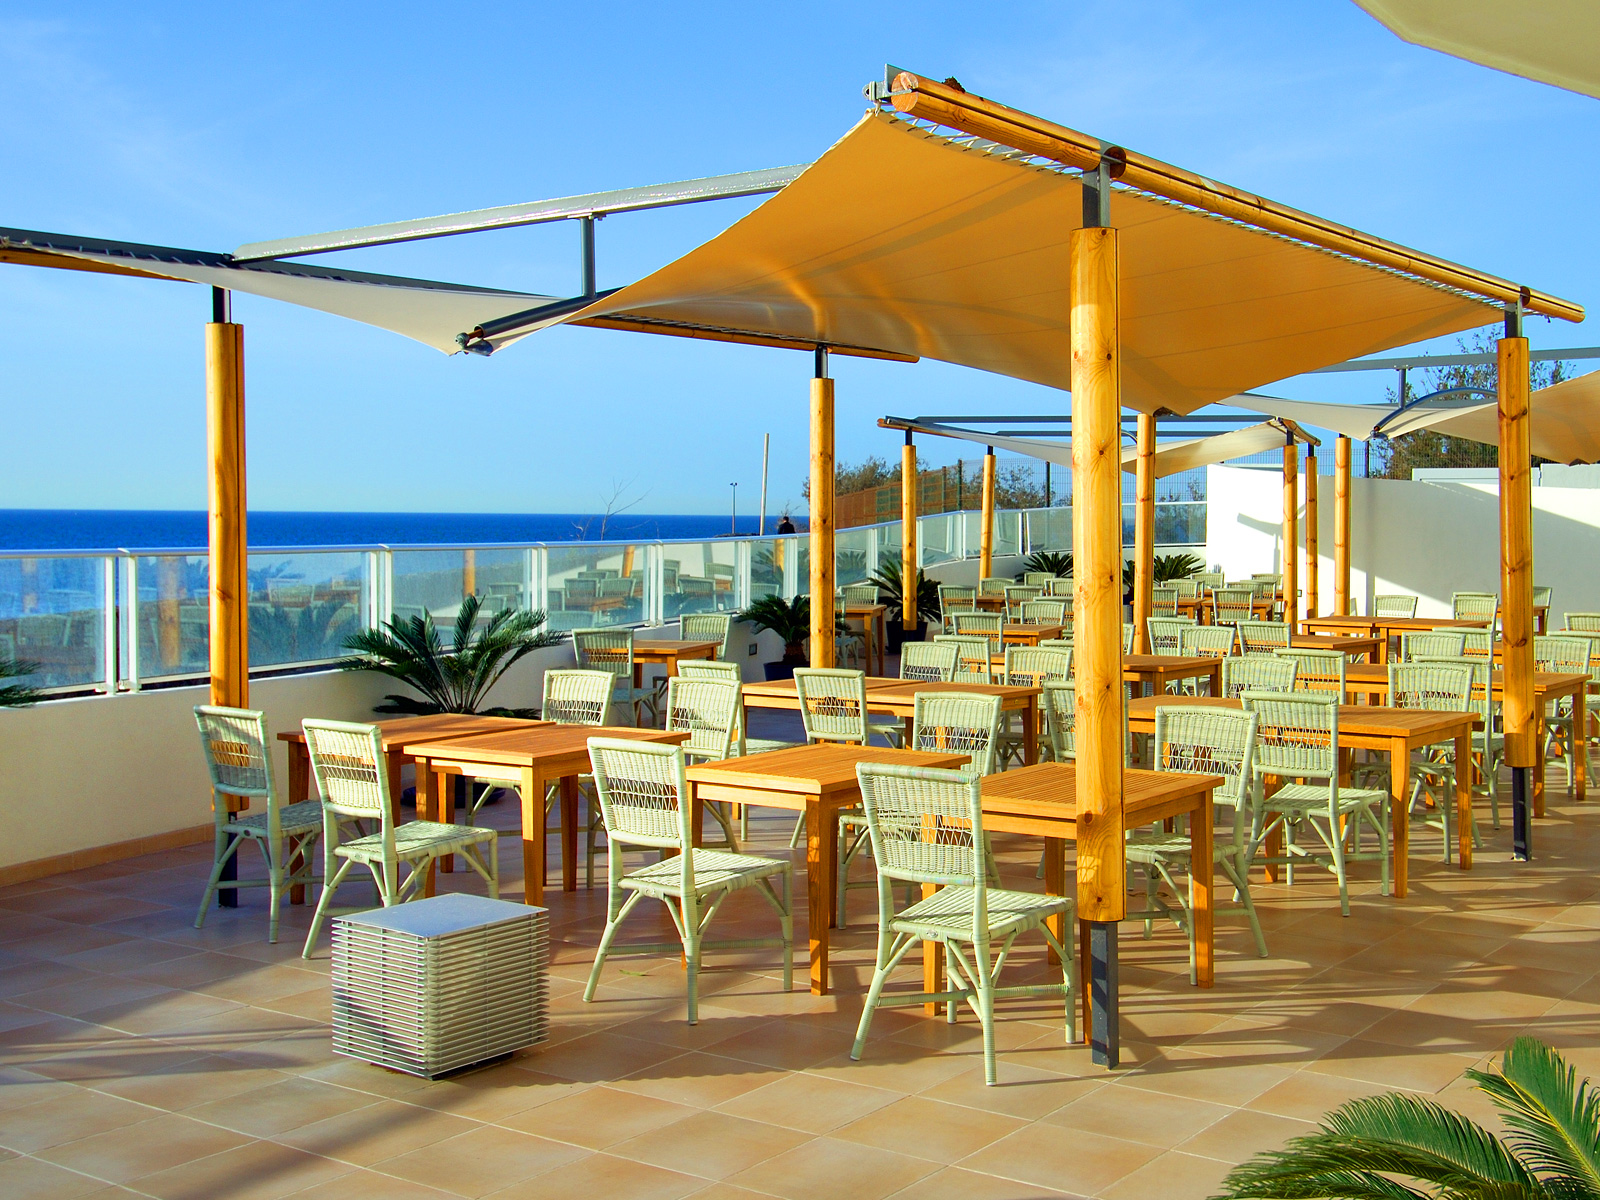 Terrace Restaurant - Vincci Tenerife Golf 4*